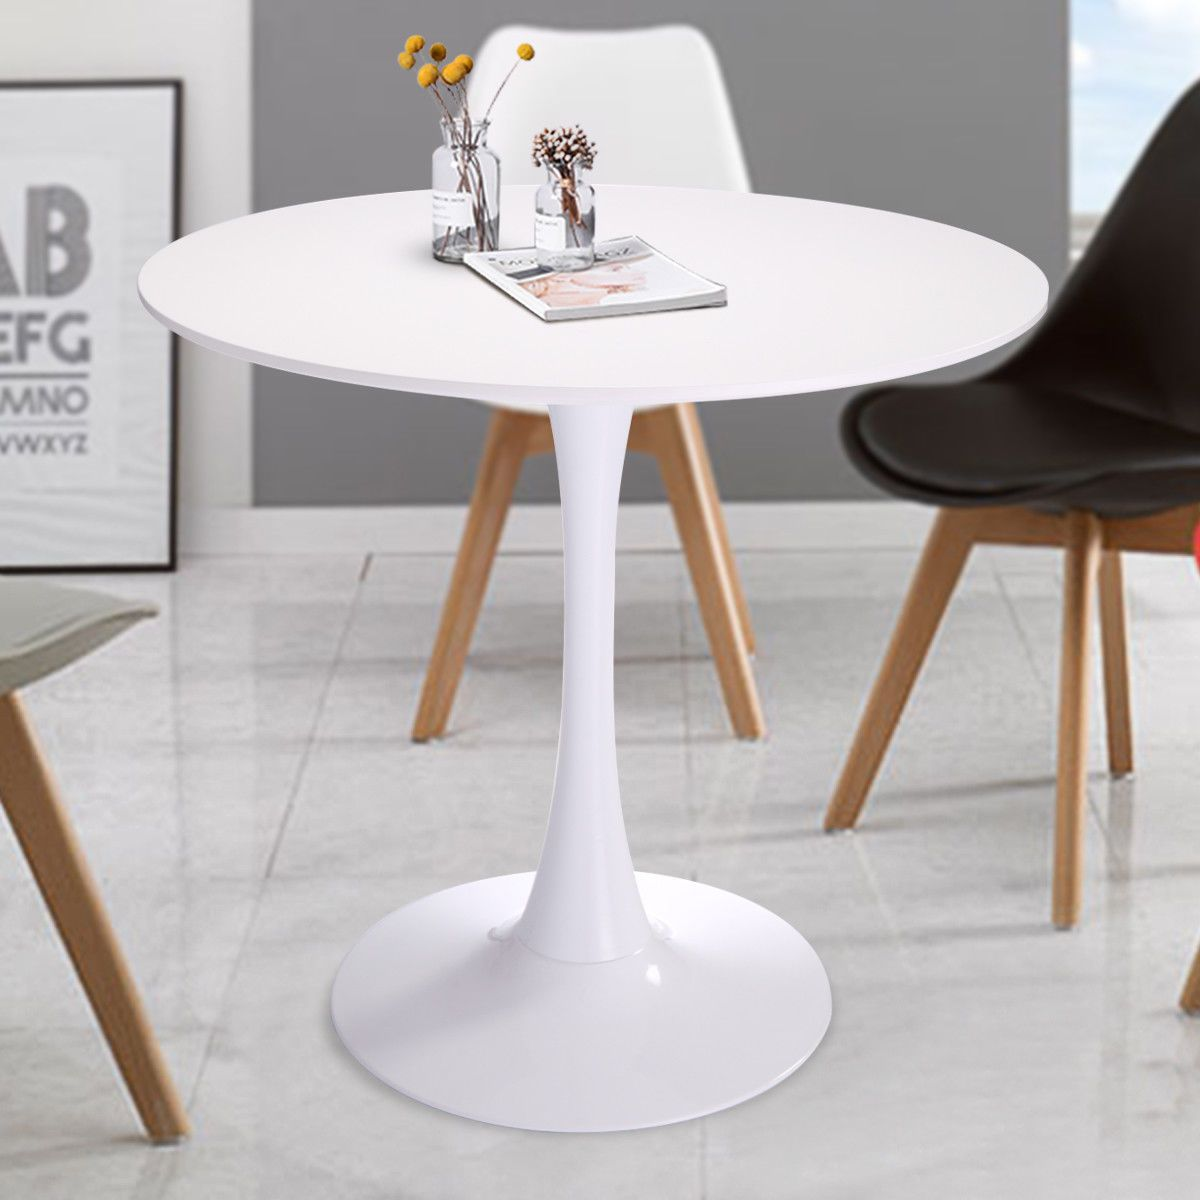 32 Inch Round Tulip Dining Table Coffee In White